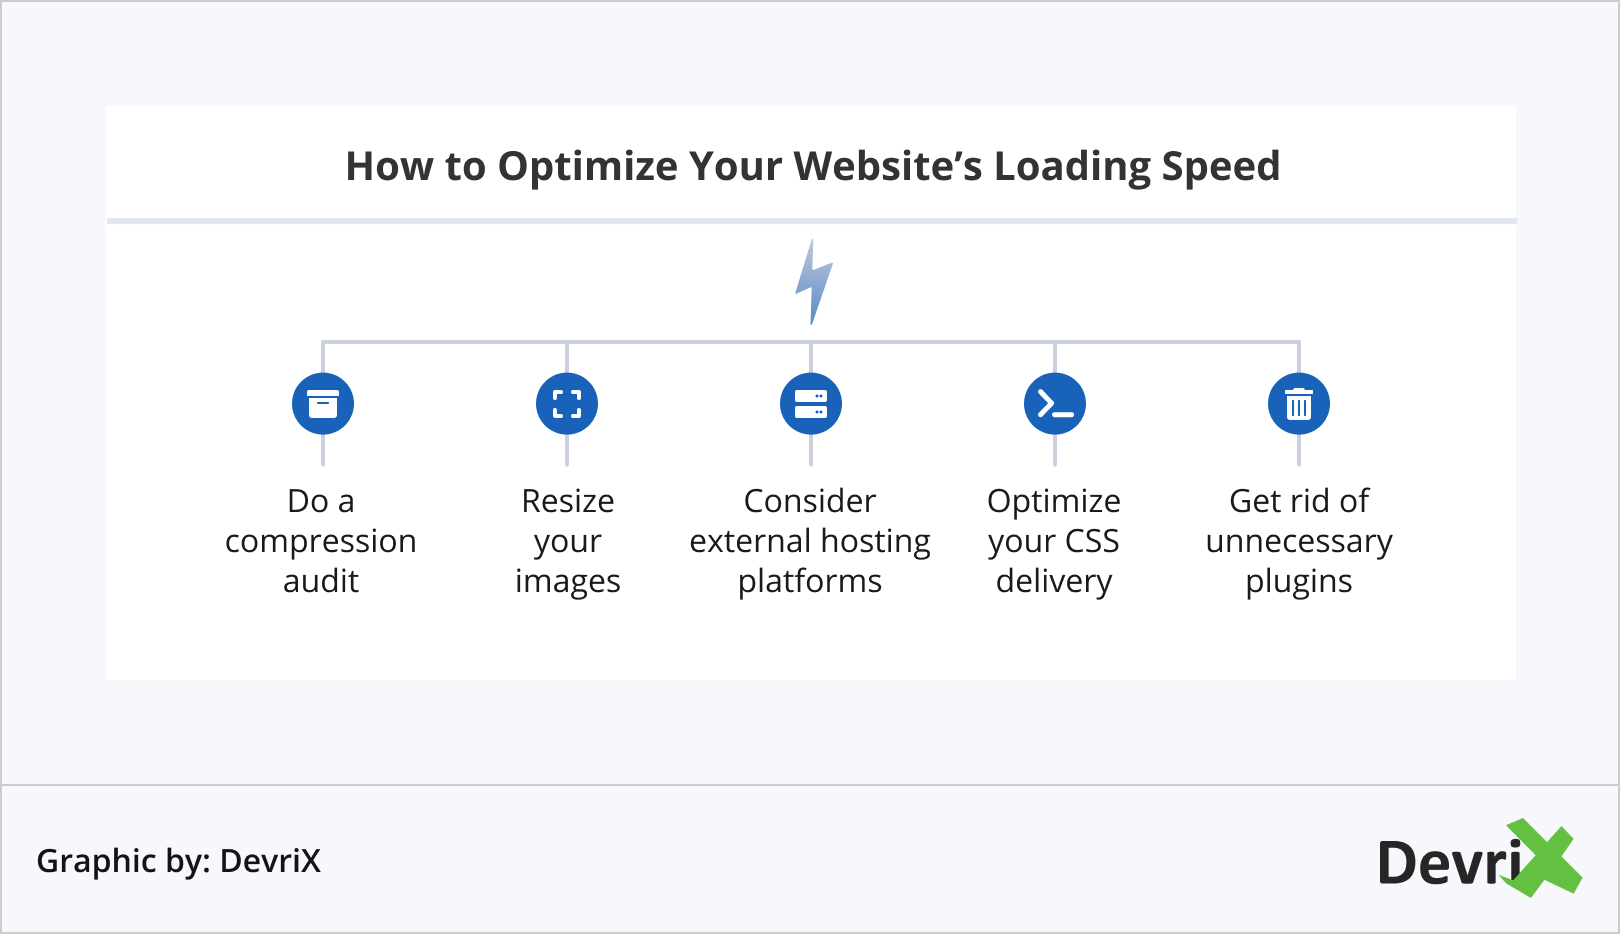 How to Optimize Your Website's Loading Speed